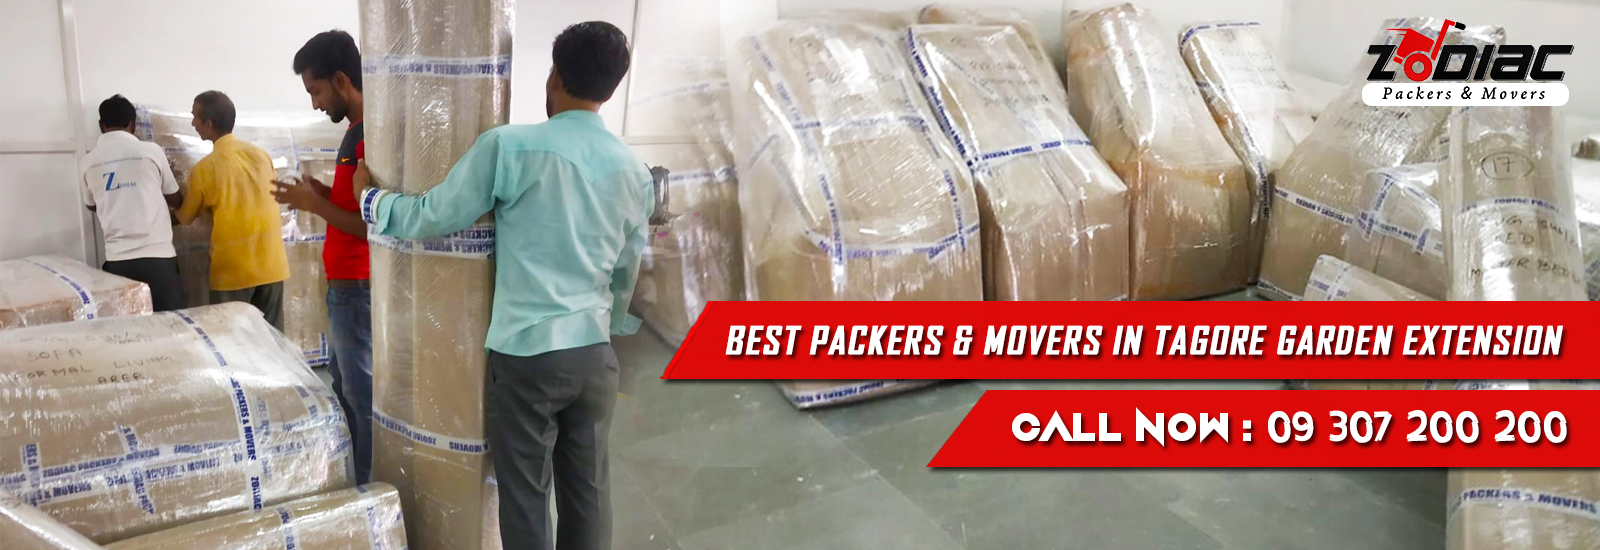 Packers and Movers in Tagore Garden Extension